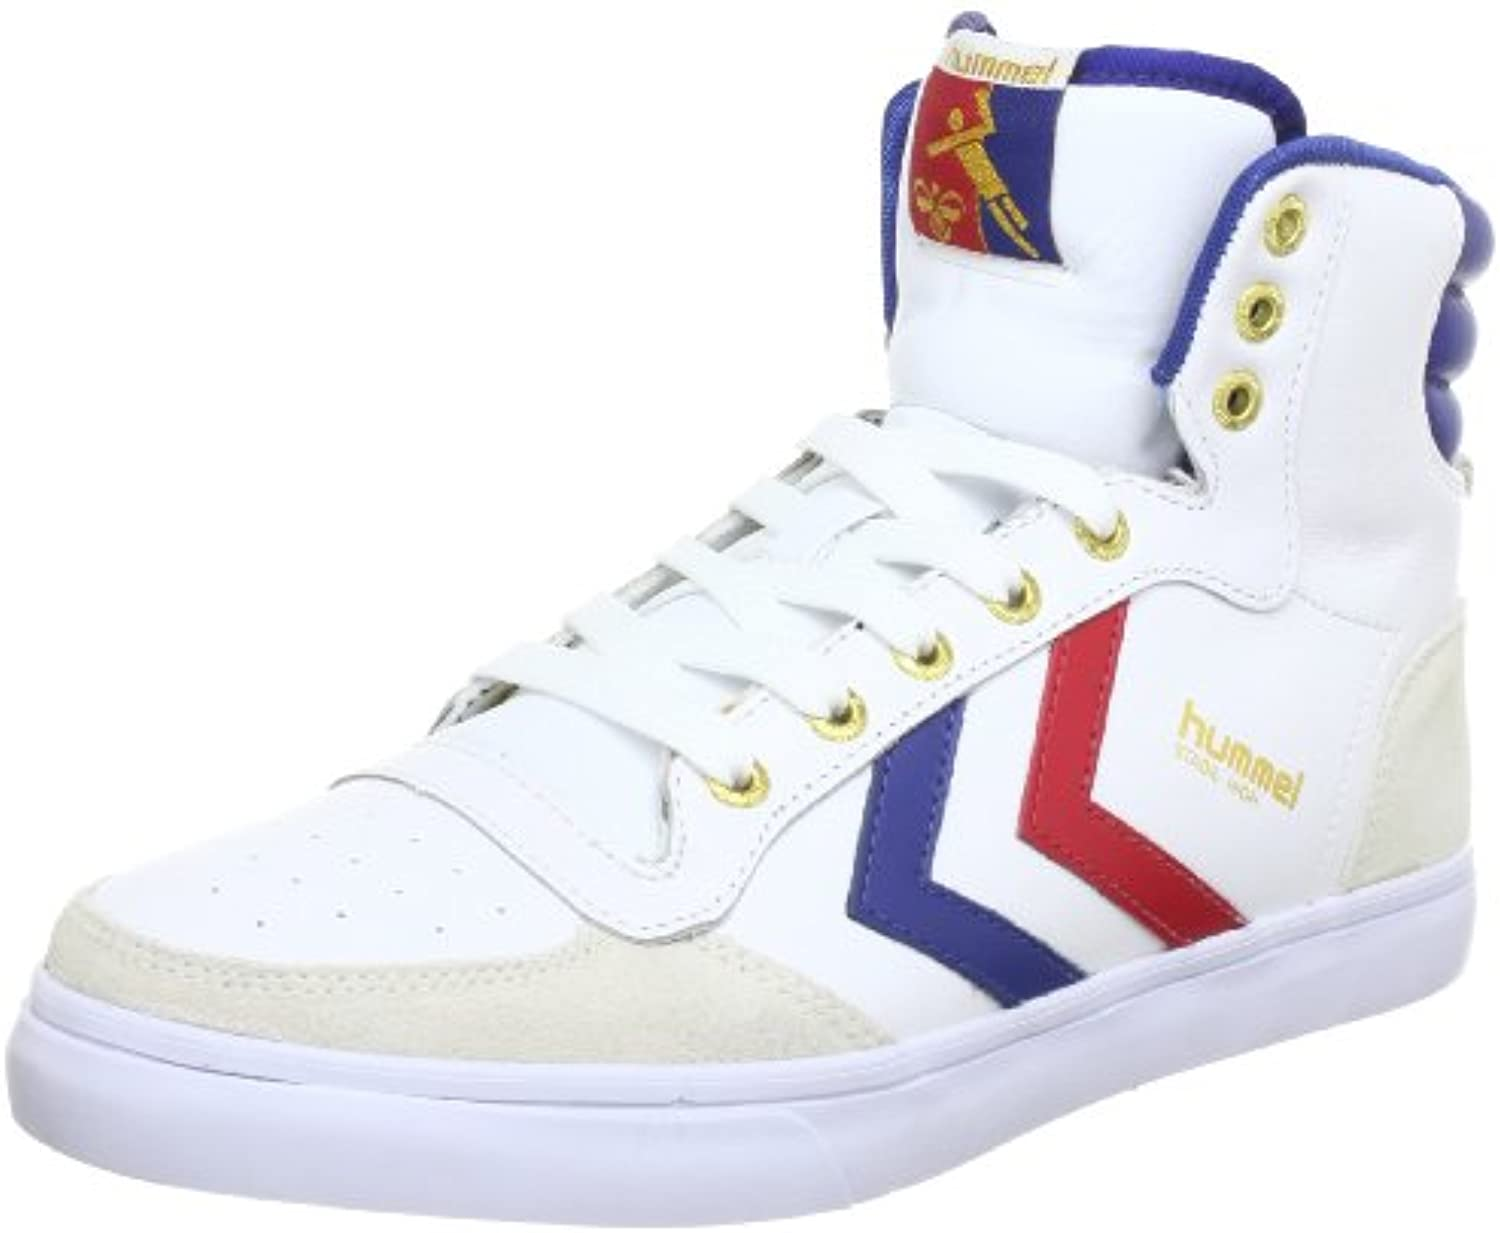 Hummel STADIL HIGH 63 066 2640 Unisex   Erwachsene Fashion Sneakers